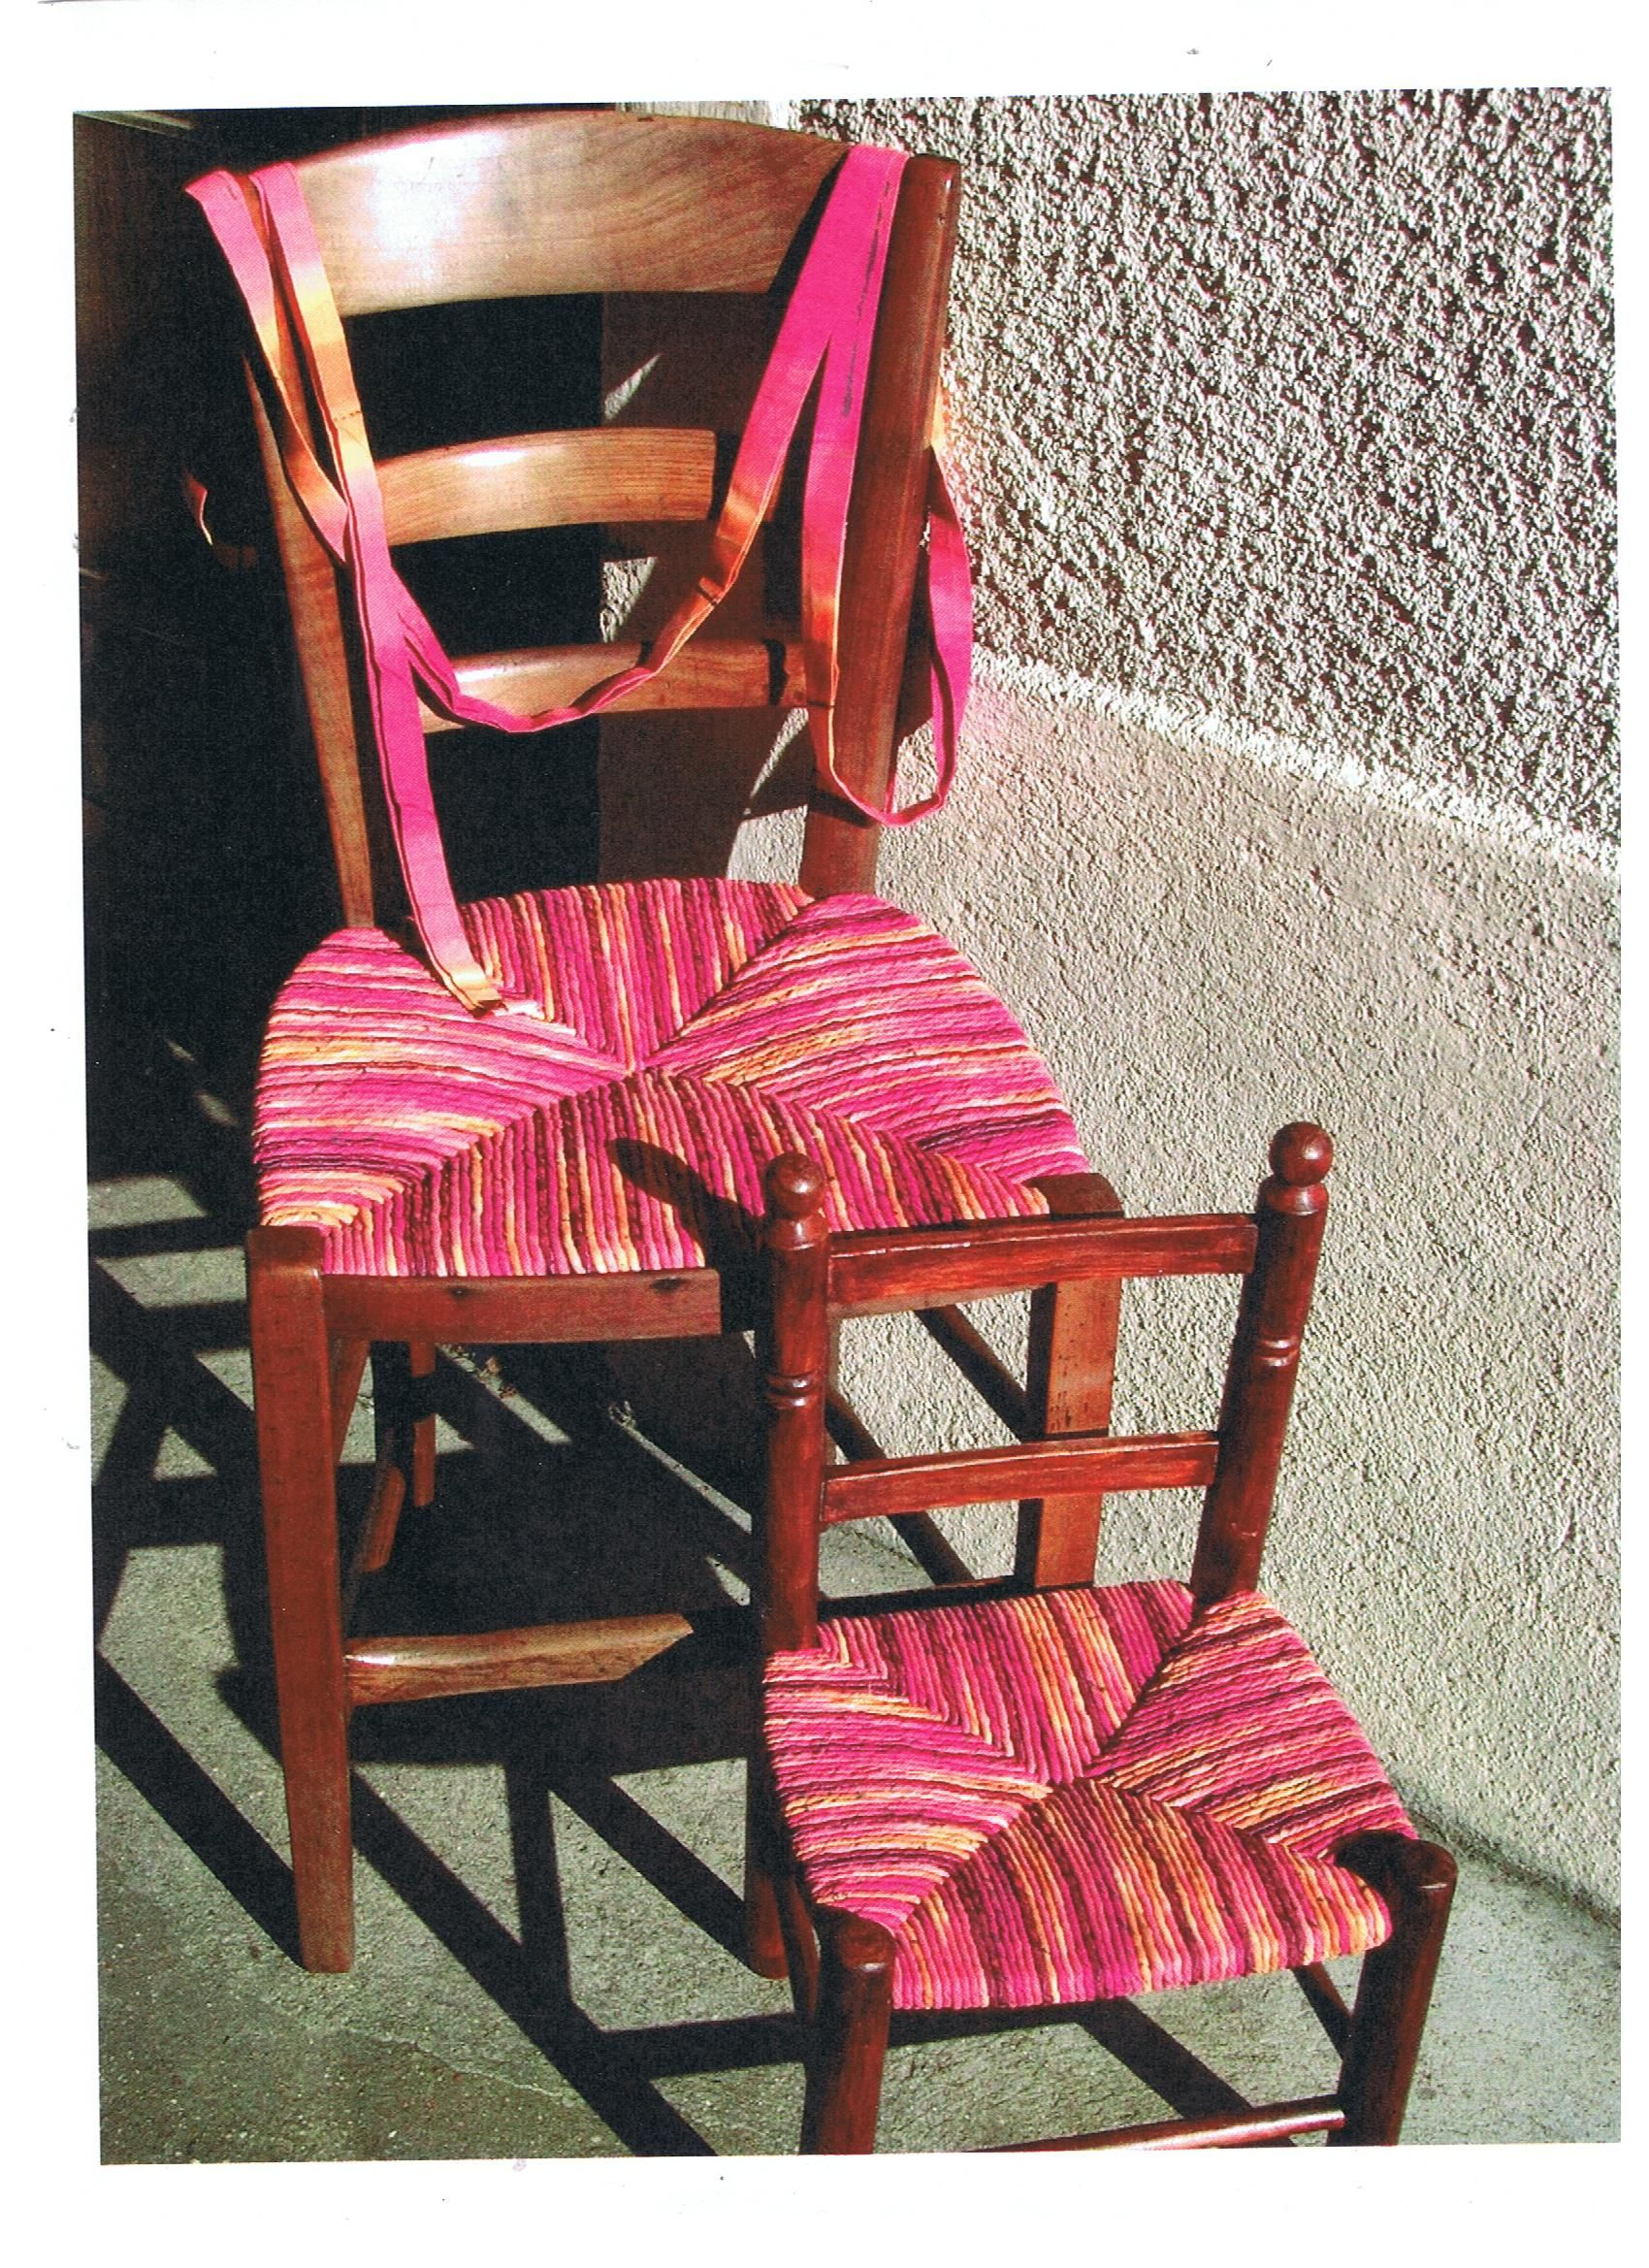 Rempailler Des Chaises Pin By Camila Najiher On Chair Reupholstery Ideas Tips In 2019